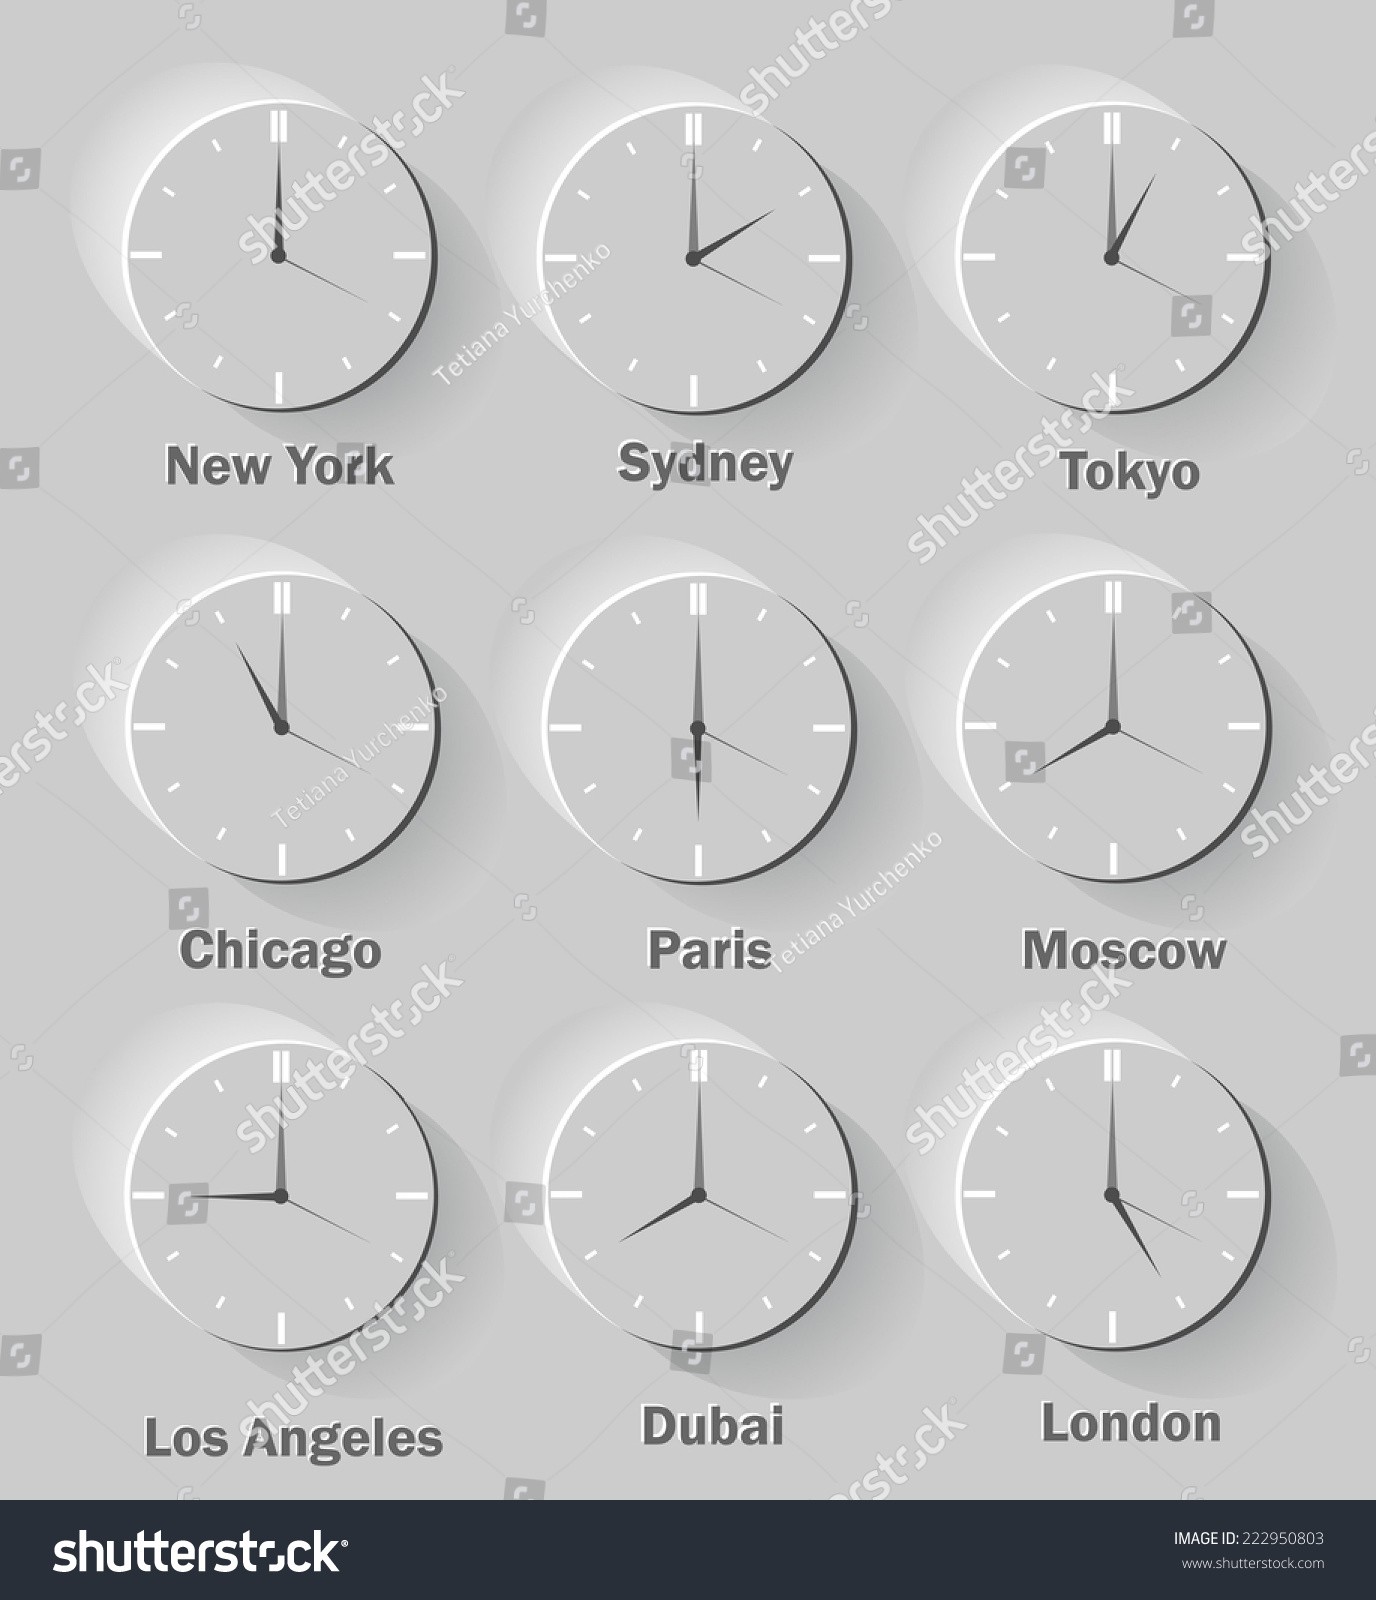 world clock time difference major cities stock illustration